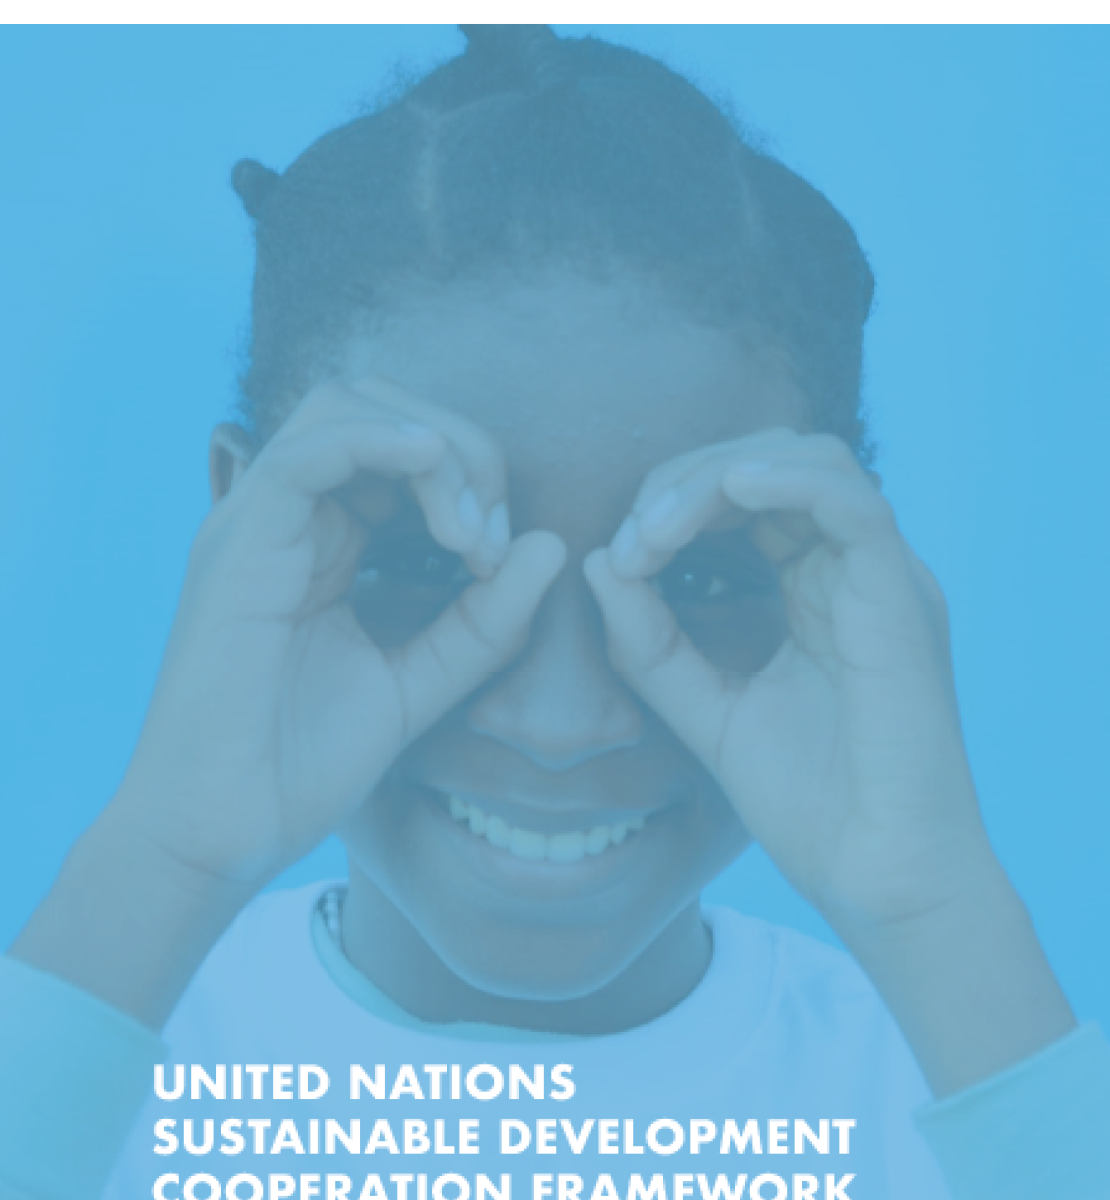 This is a document with a blue background and white text.  The Government of Cameroon and UN logos appear at the top of the document.